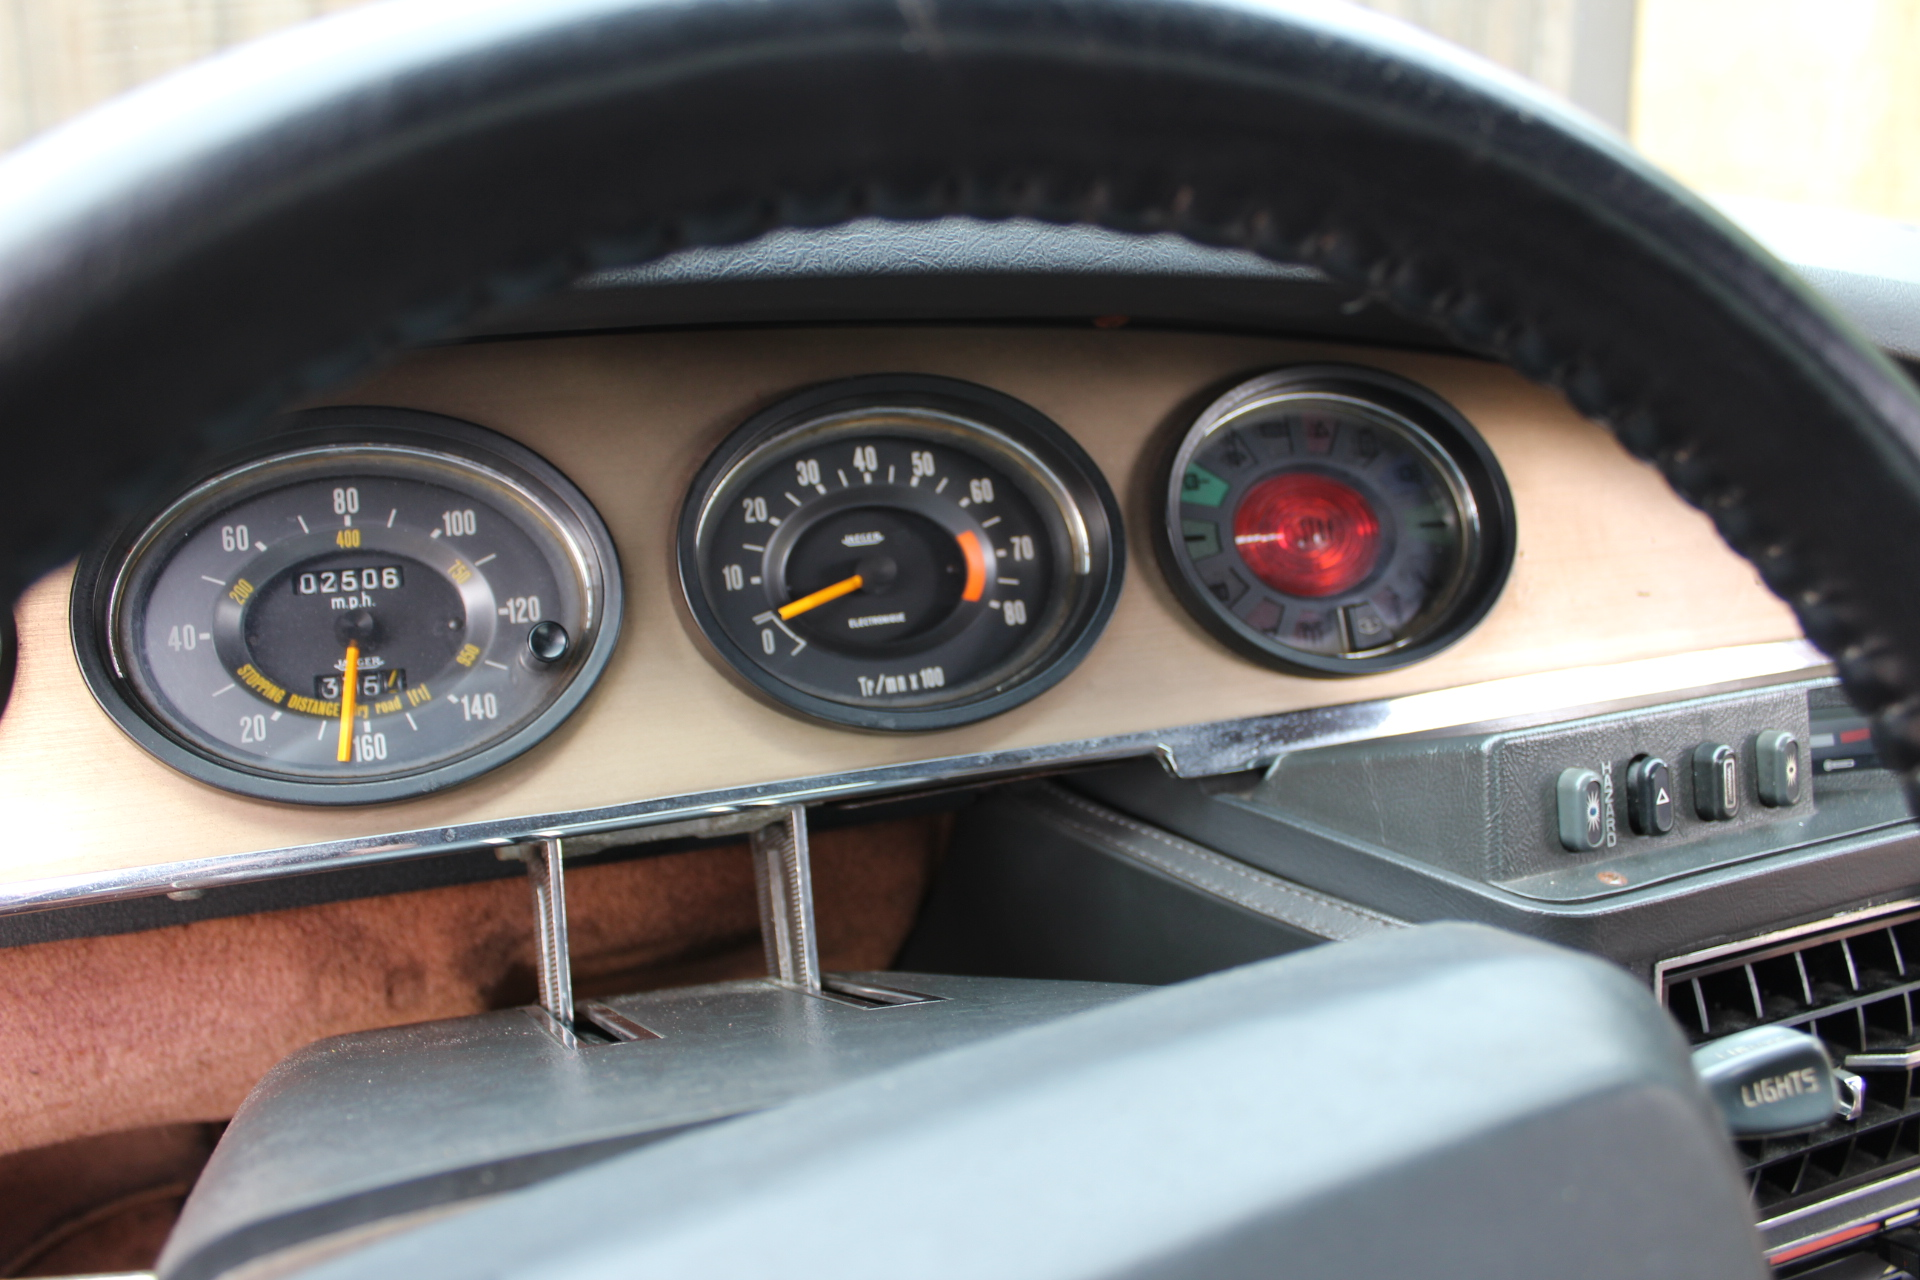 1972 Red Citroen SM - Dash